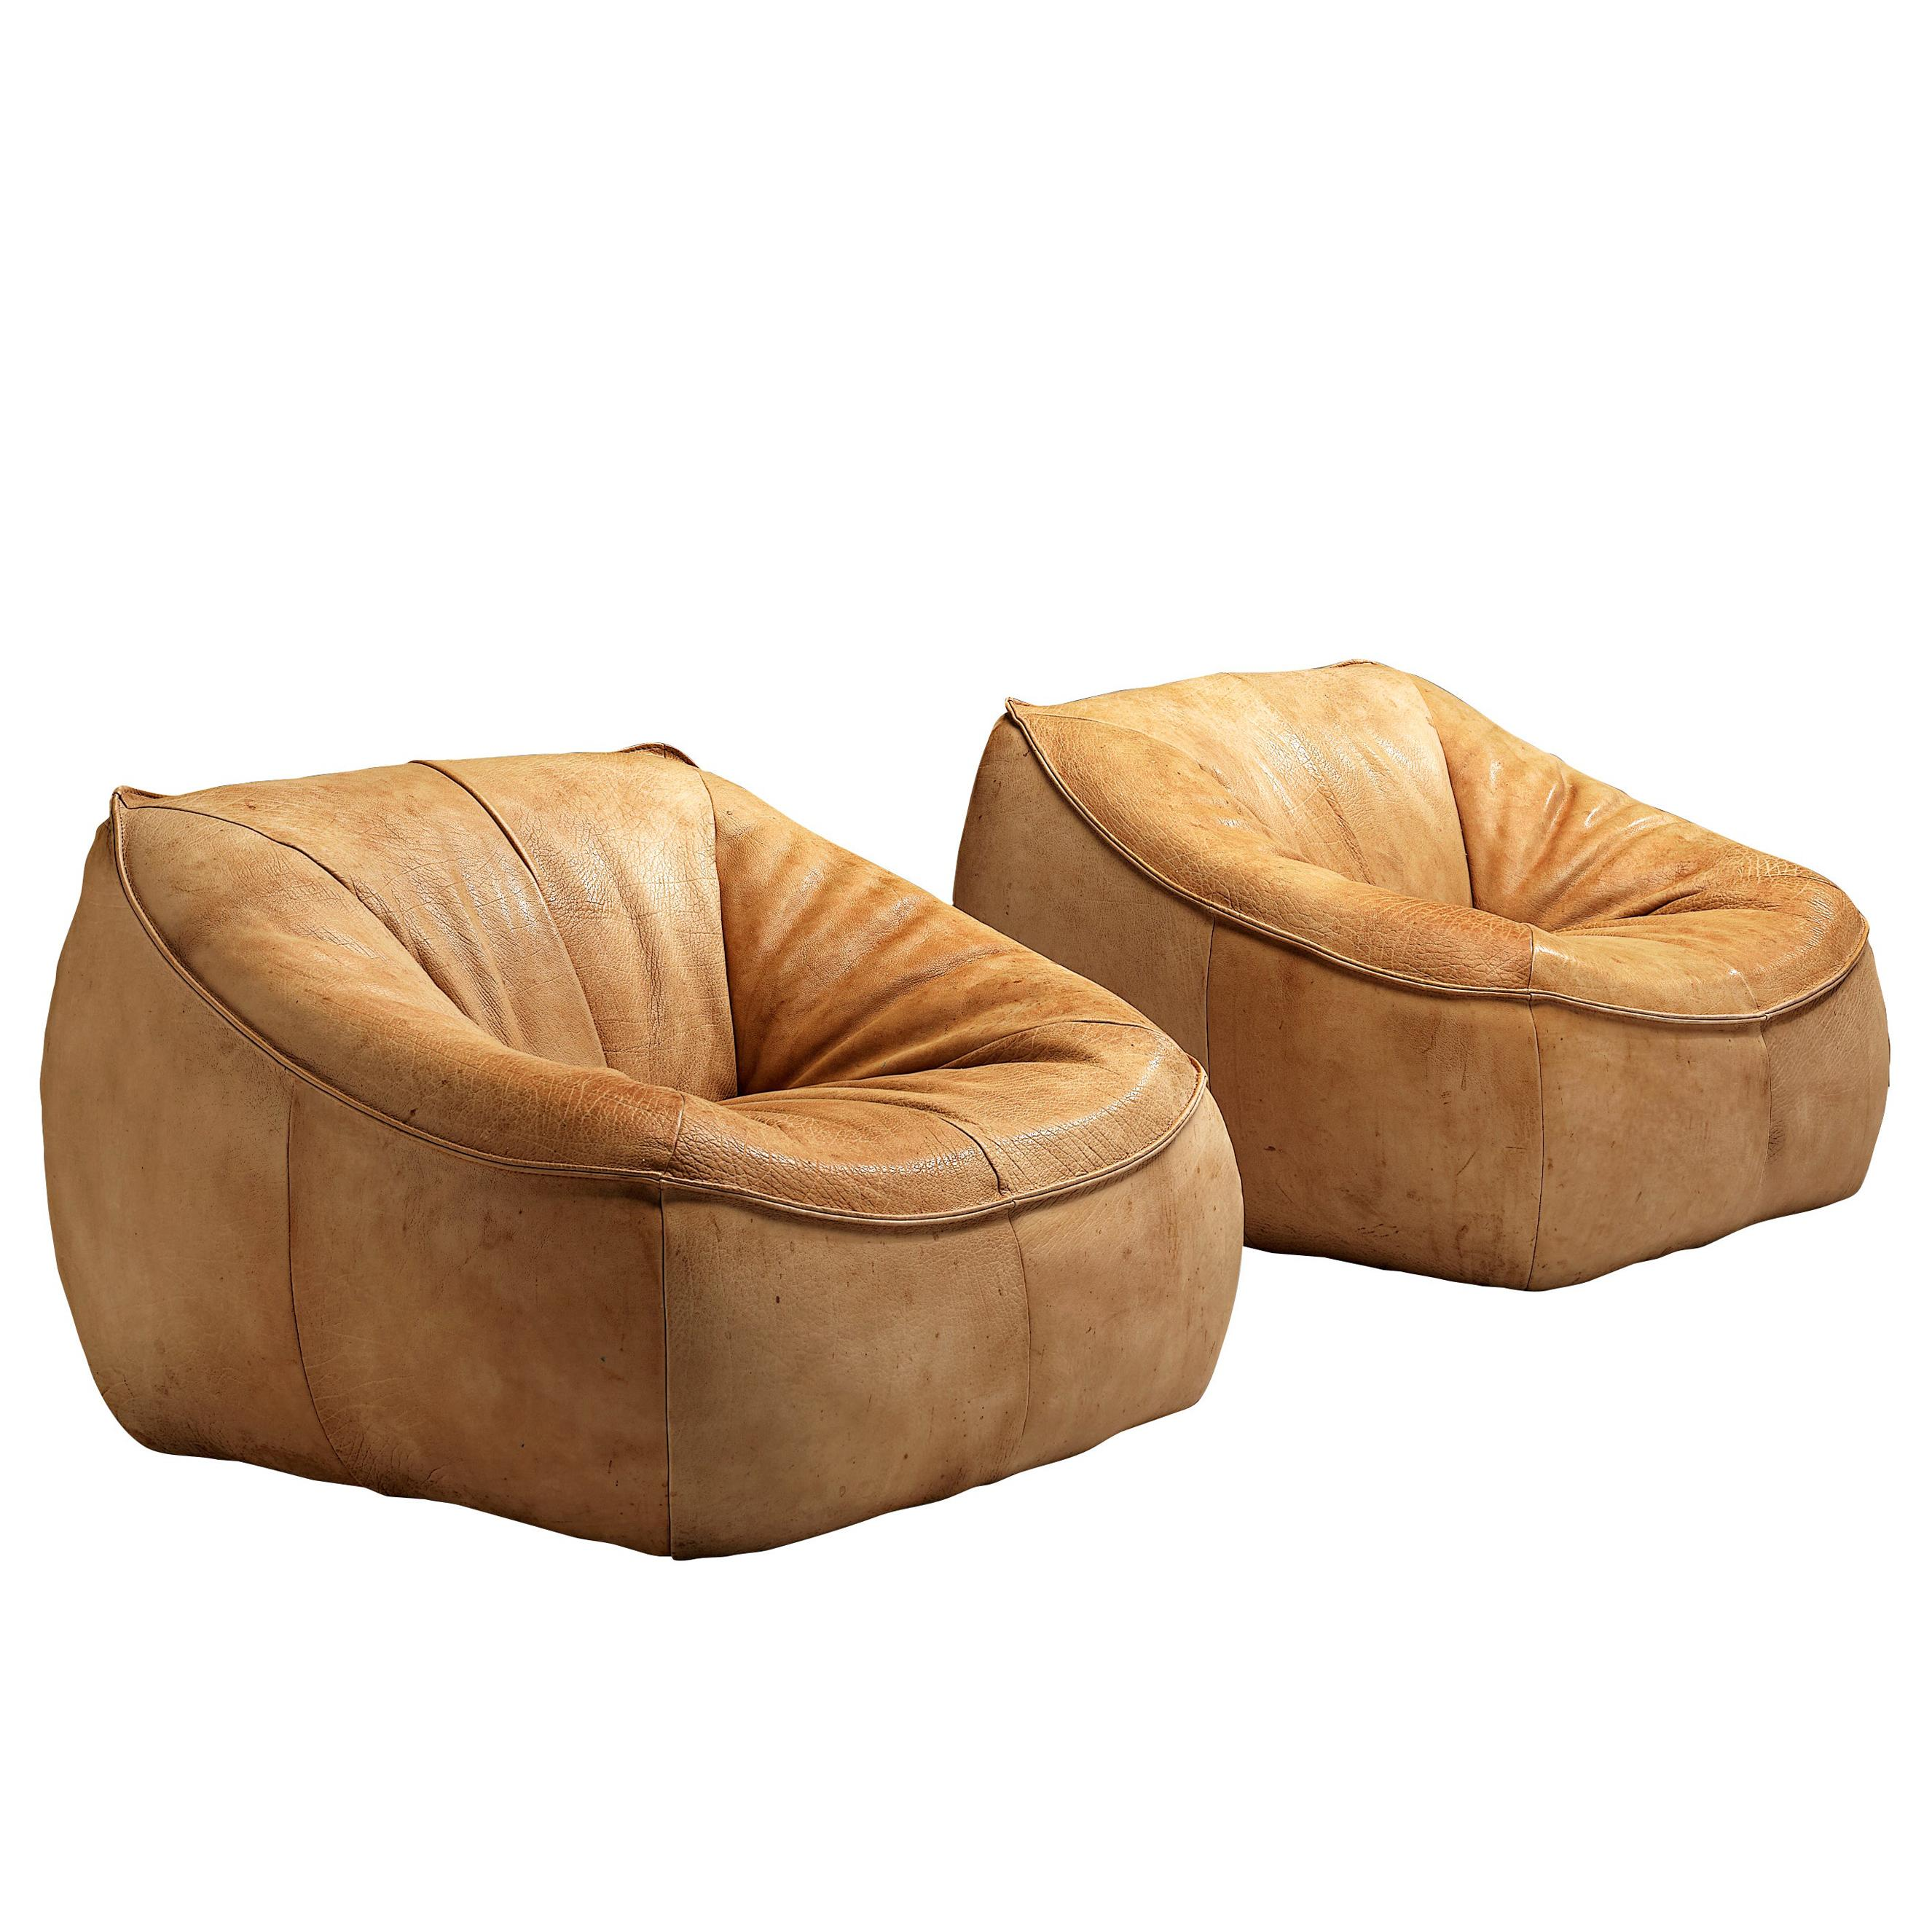 Gerard Van Den Berg for Montis Lounge Chairs Model 'Ringo' in Patinated Leather